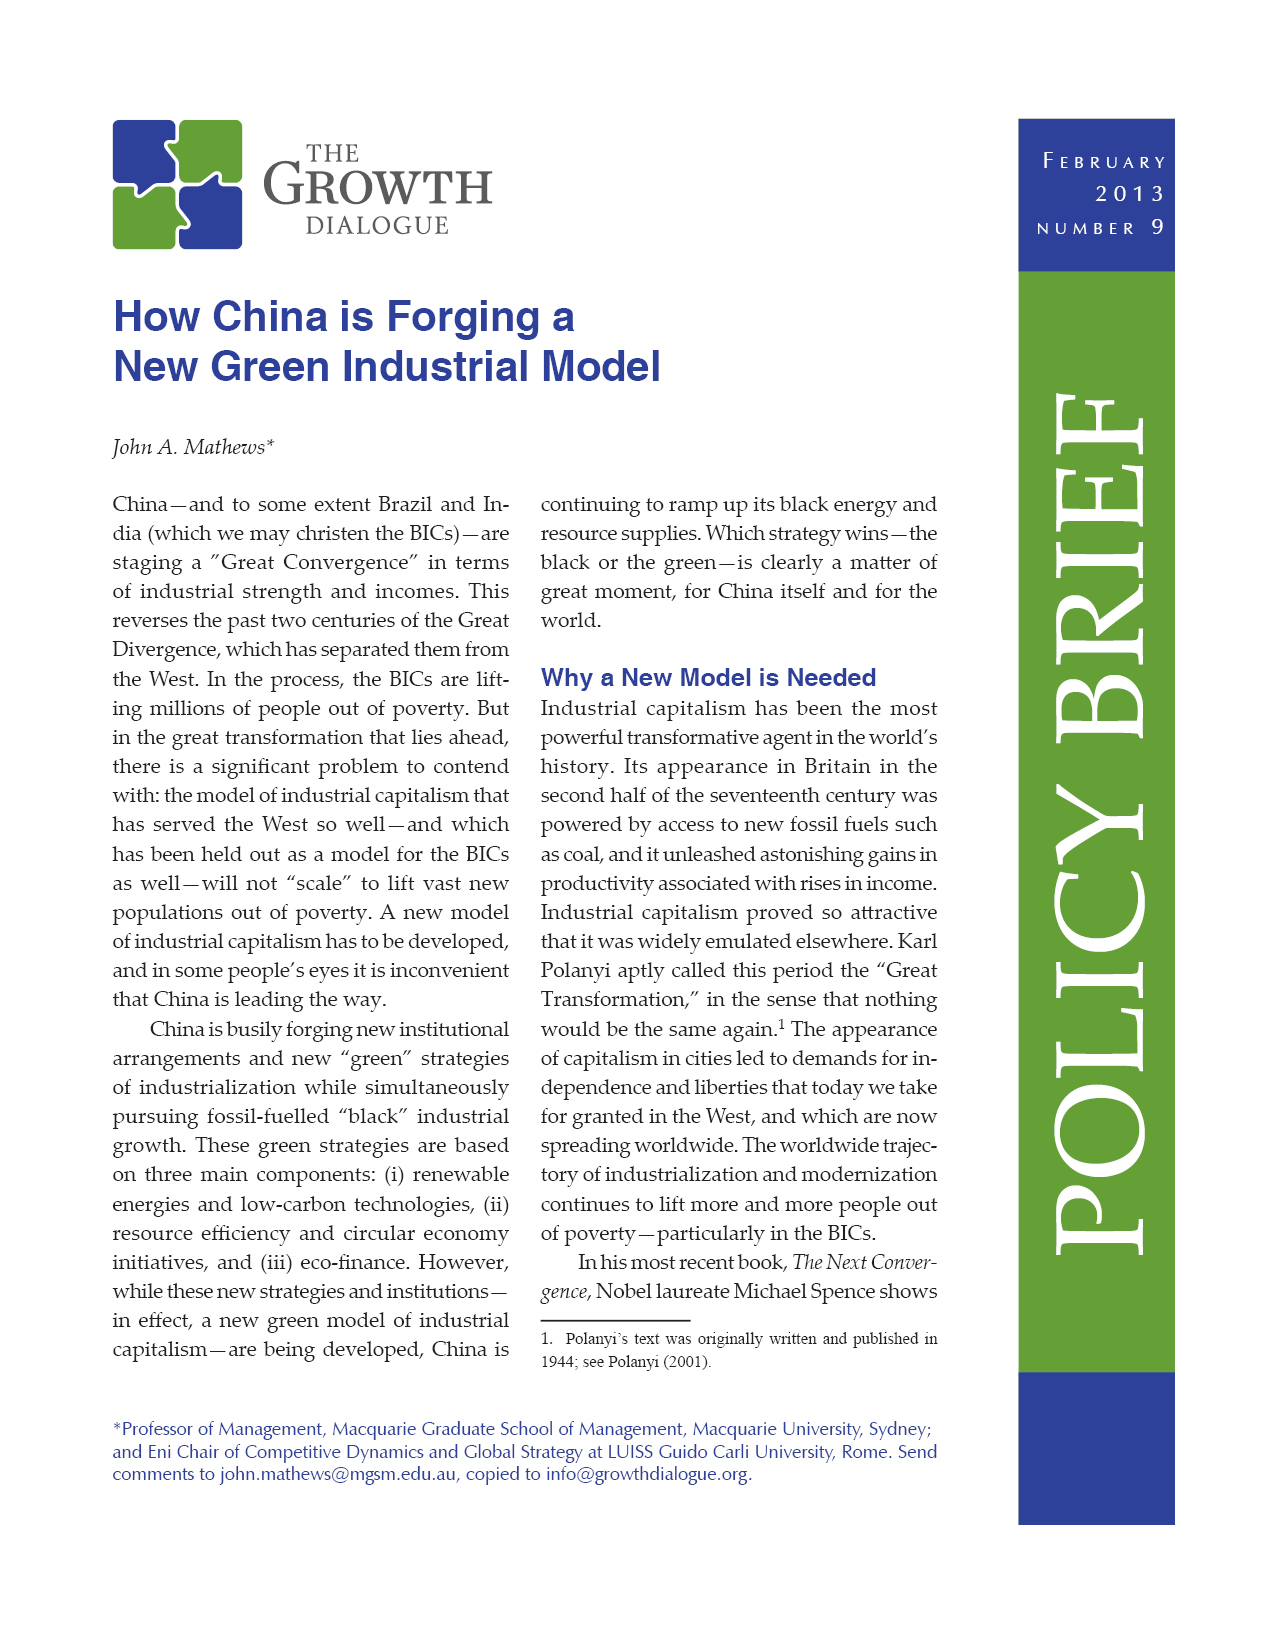 How China is Forging a New Green Industrial Model